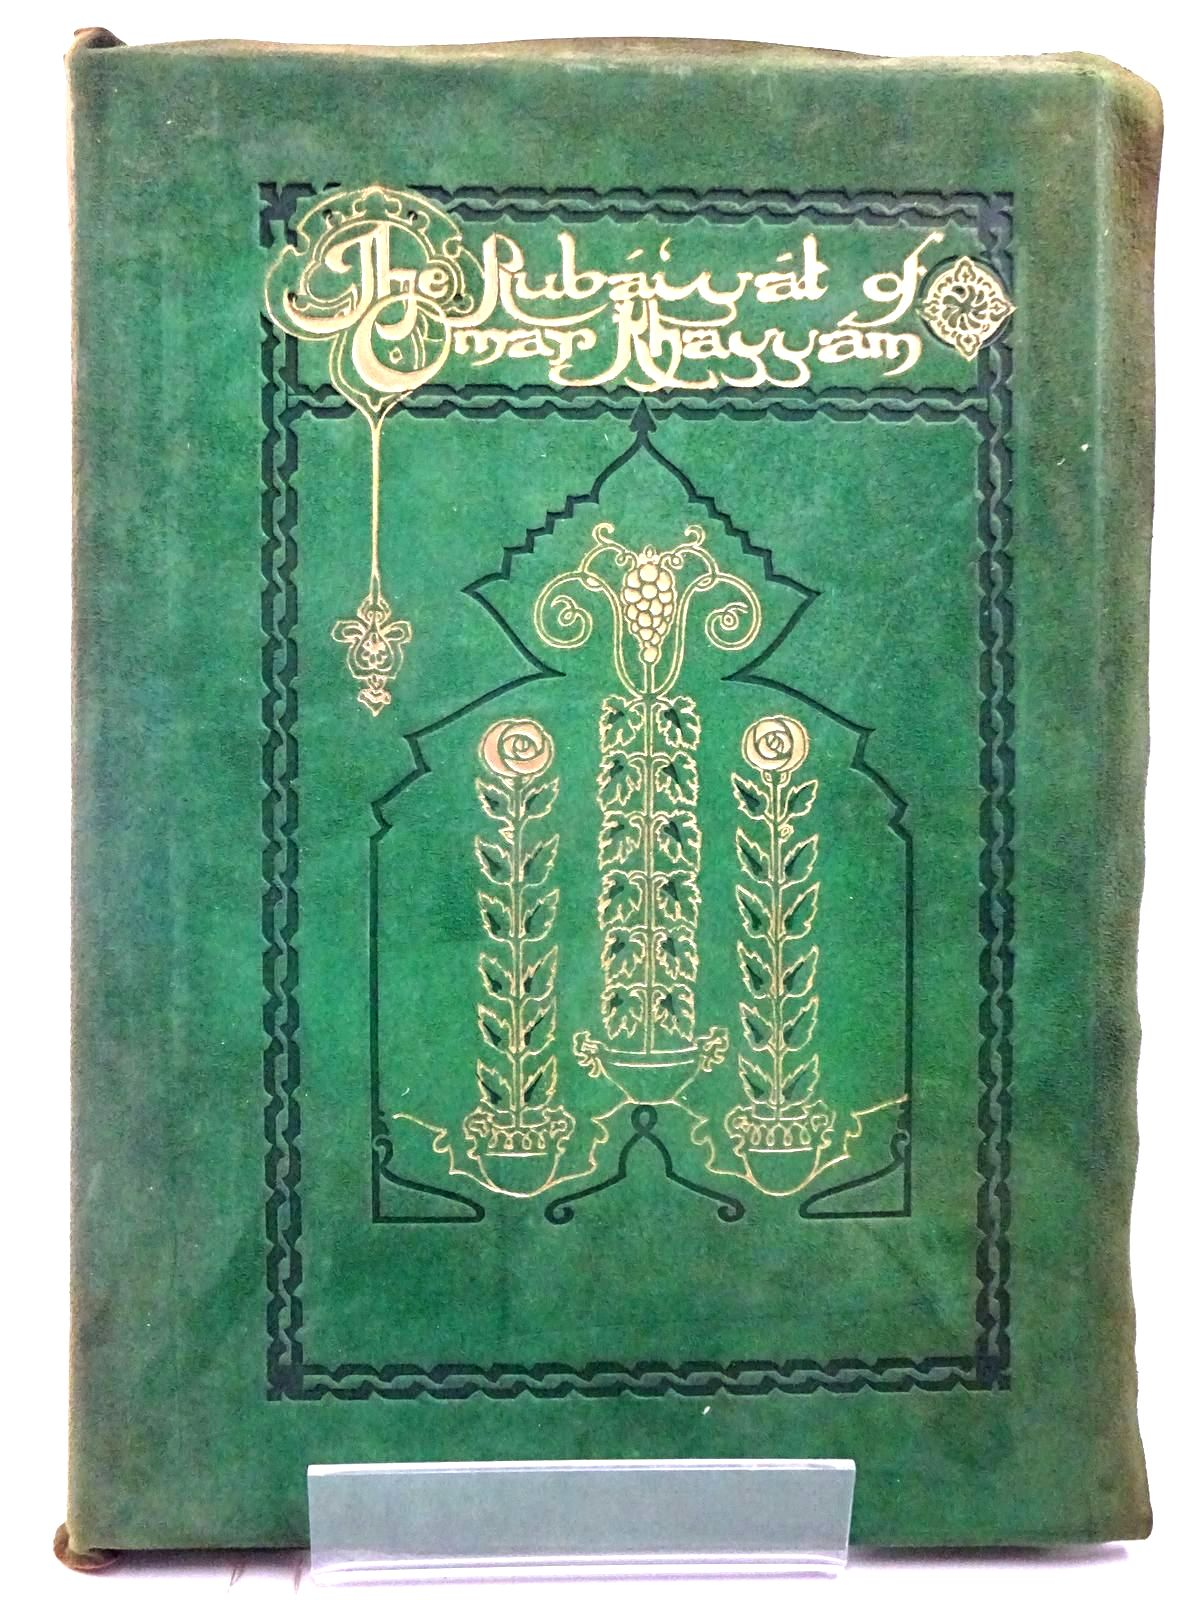 Photo of RUBAIYAT OF OMAR KHAYYAM written by Fitzgerald, Edward illustrated by Pogany, Willy published by George G. Harrap & Co. (STOCK CODE: 2130357)  for sale by Stella & Rose's Books